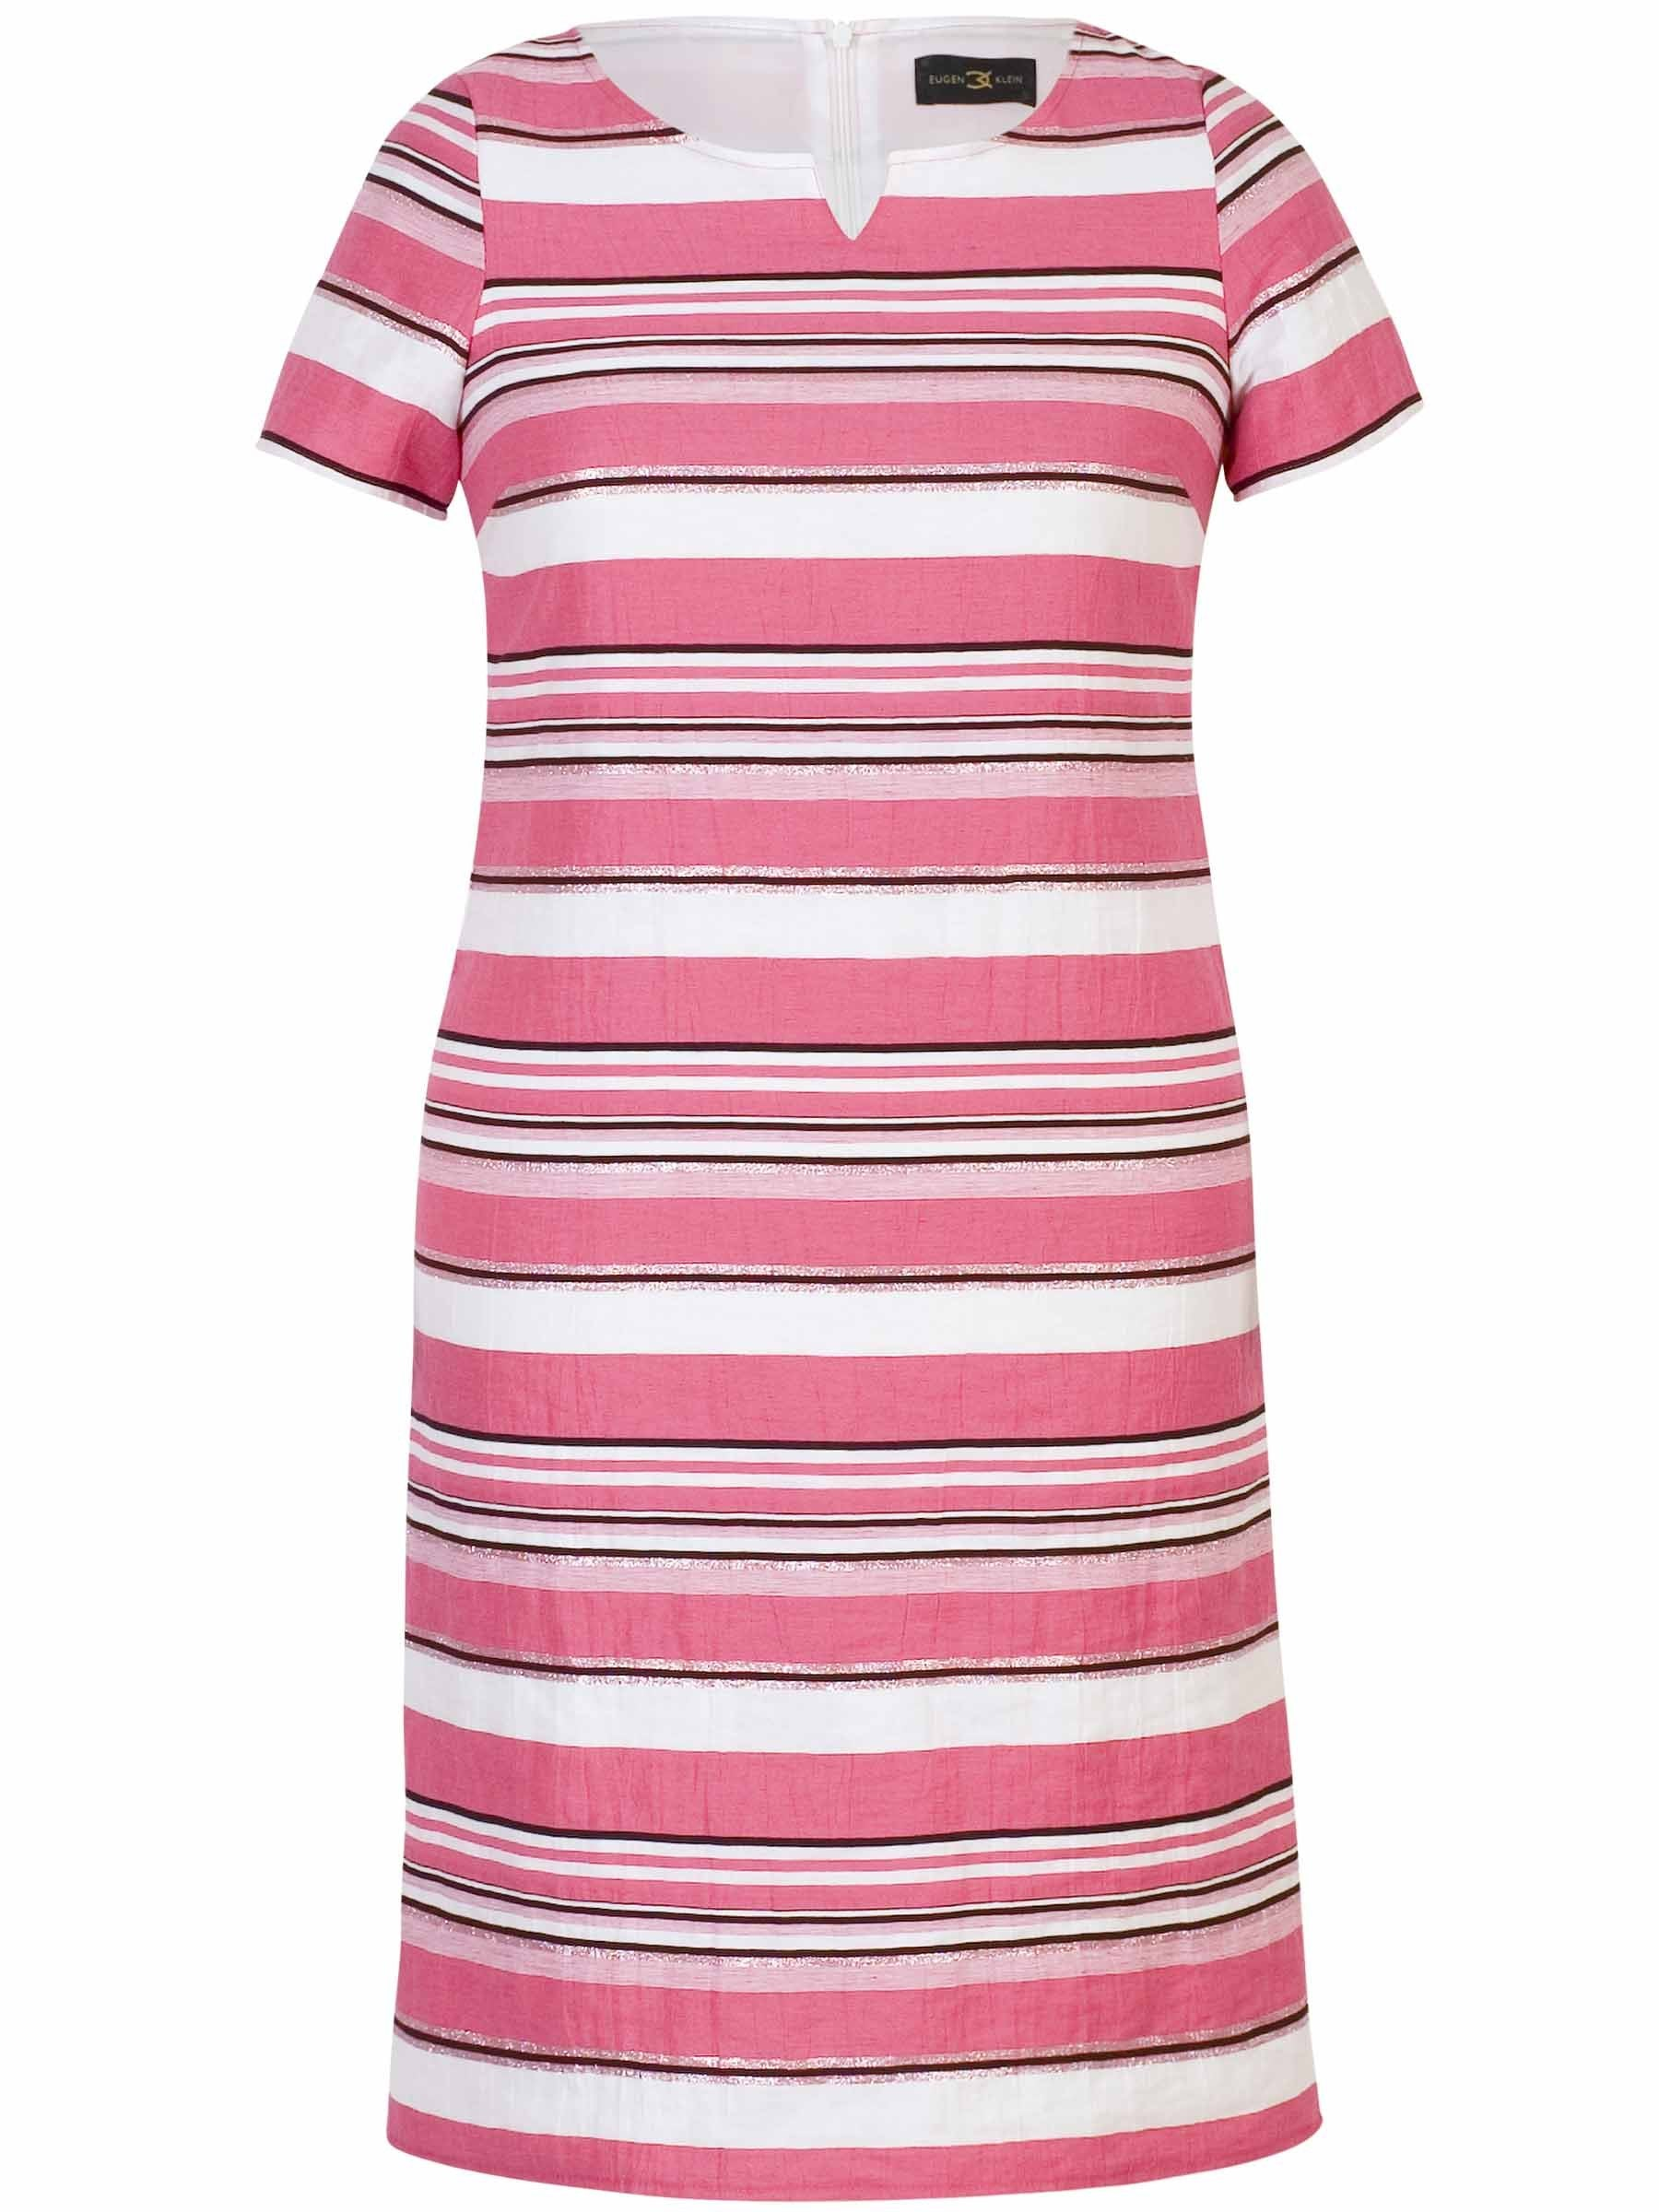 Eugen Klein Pink Linen Stripe Dress